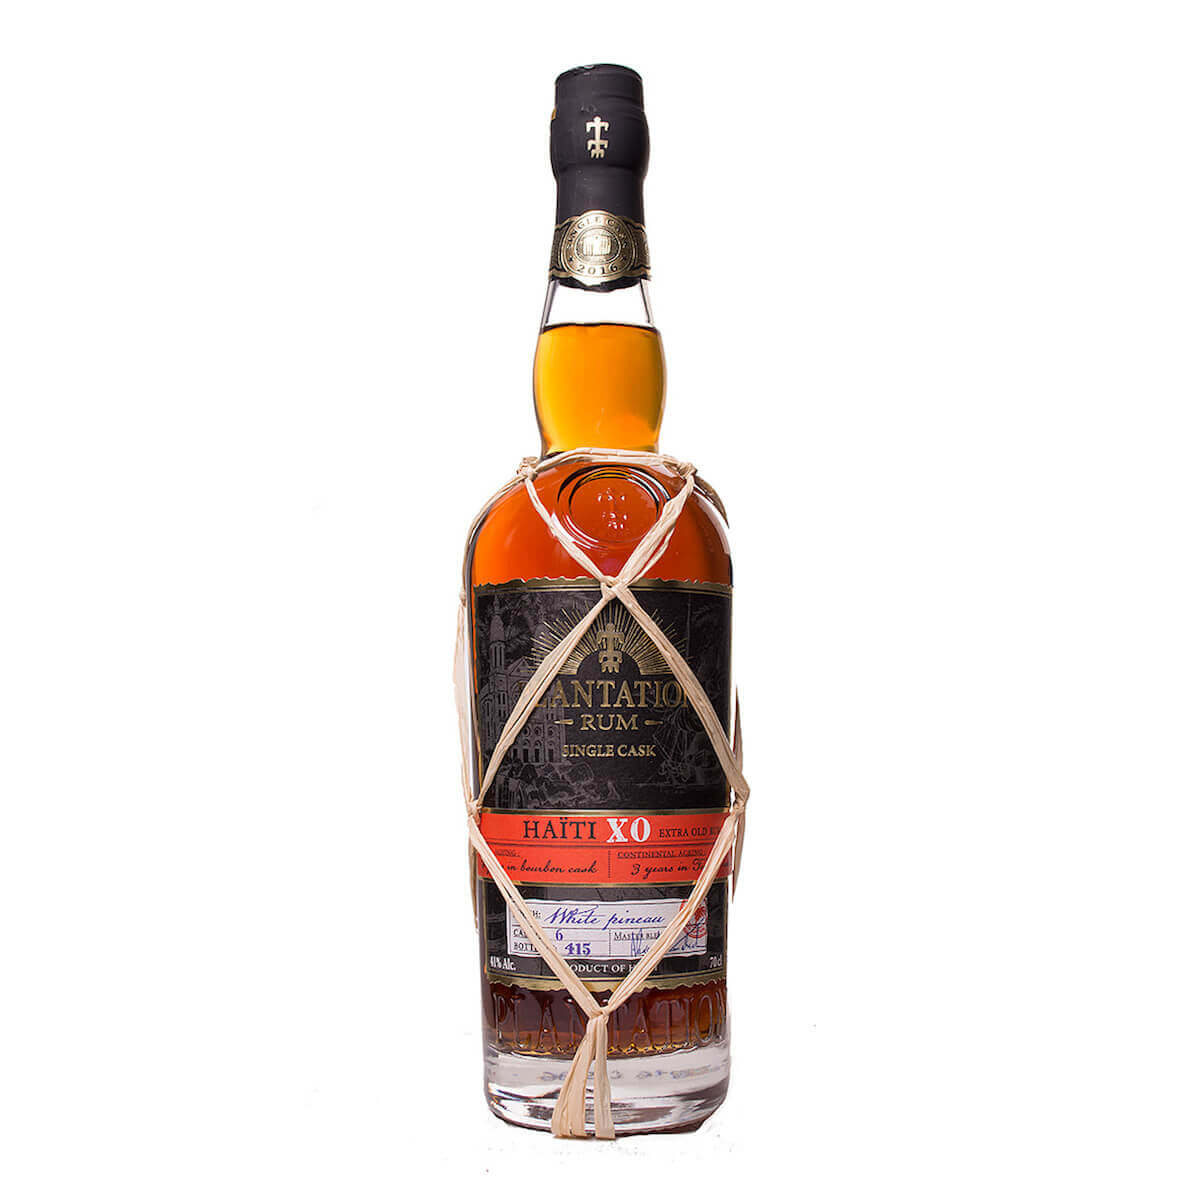 Plantation Haiti XO Single Cask